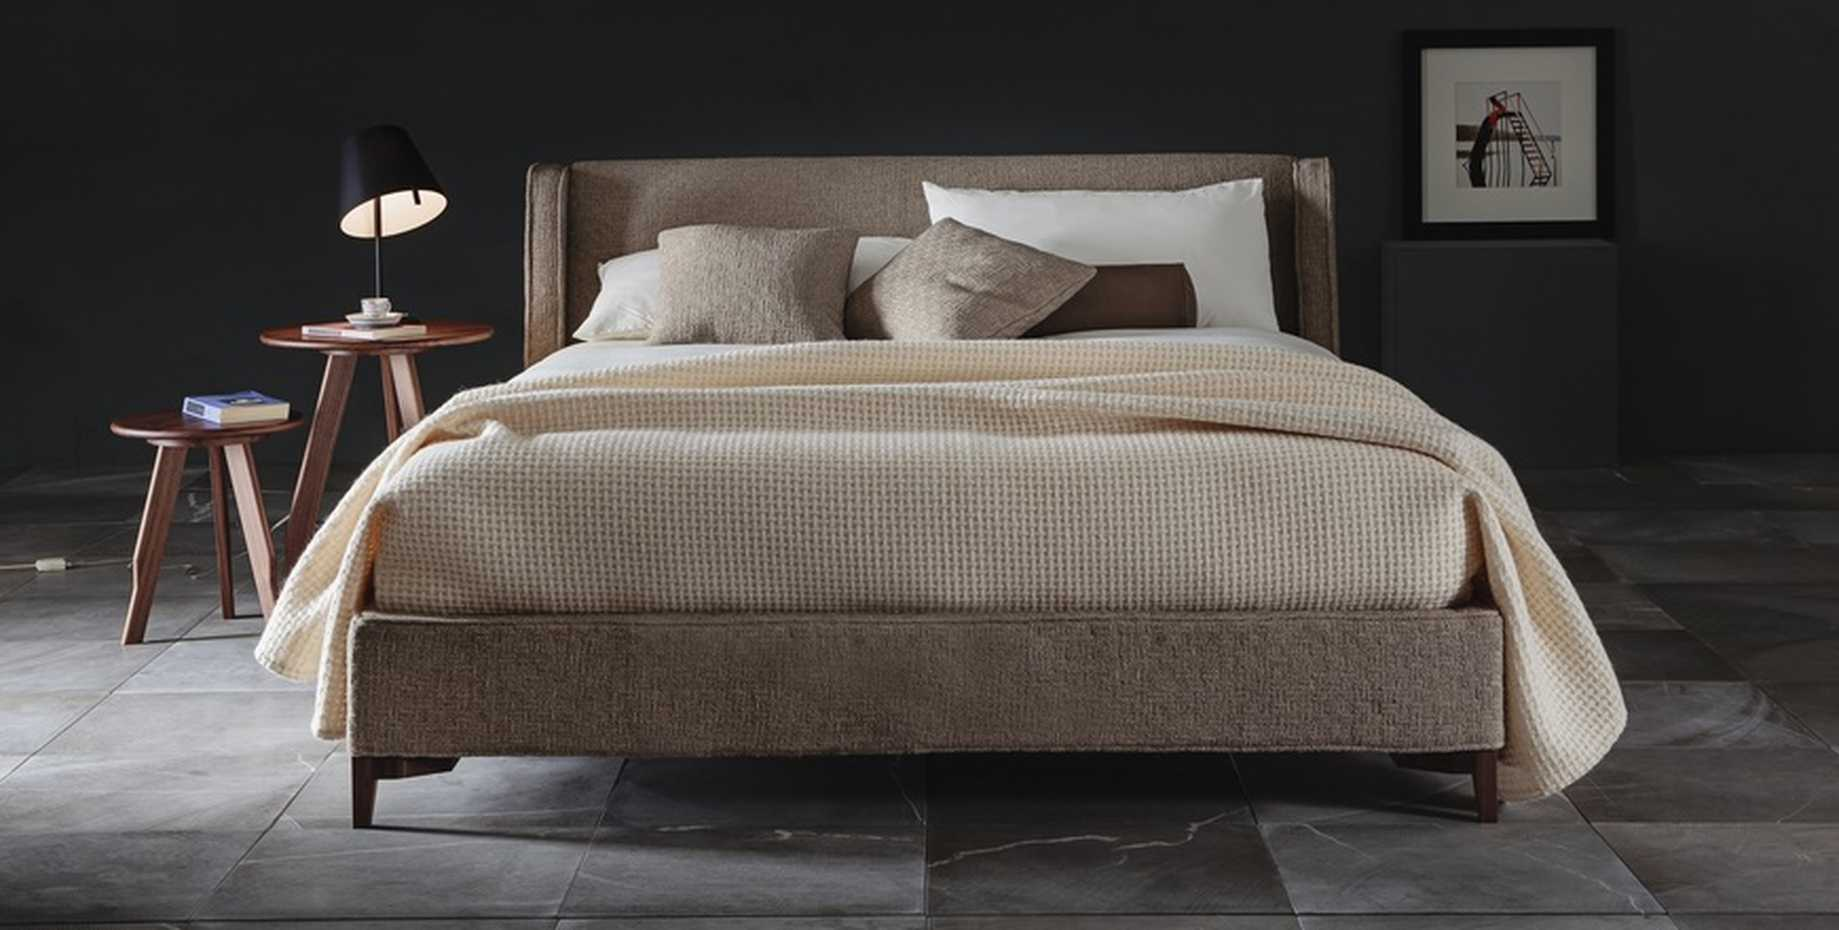 Queen Bed by Vibieffe product image 5